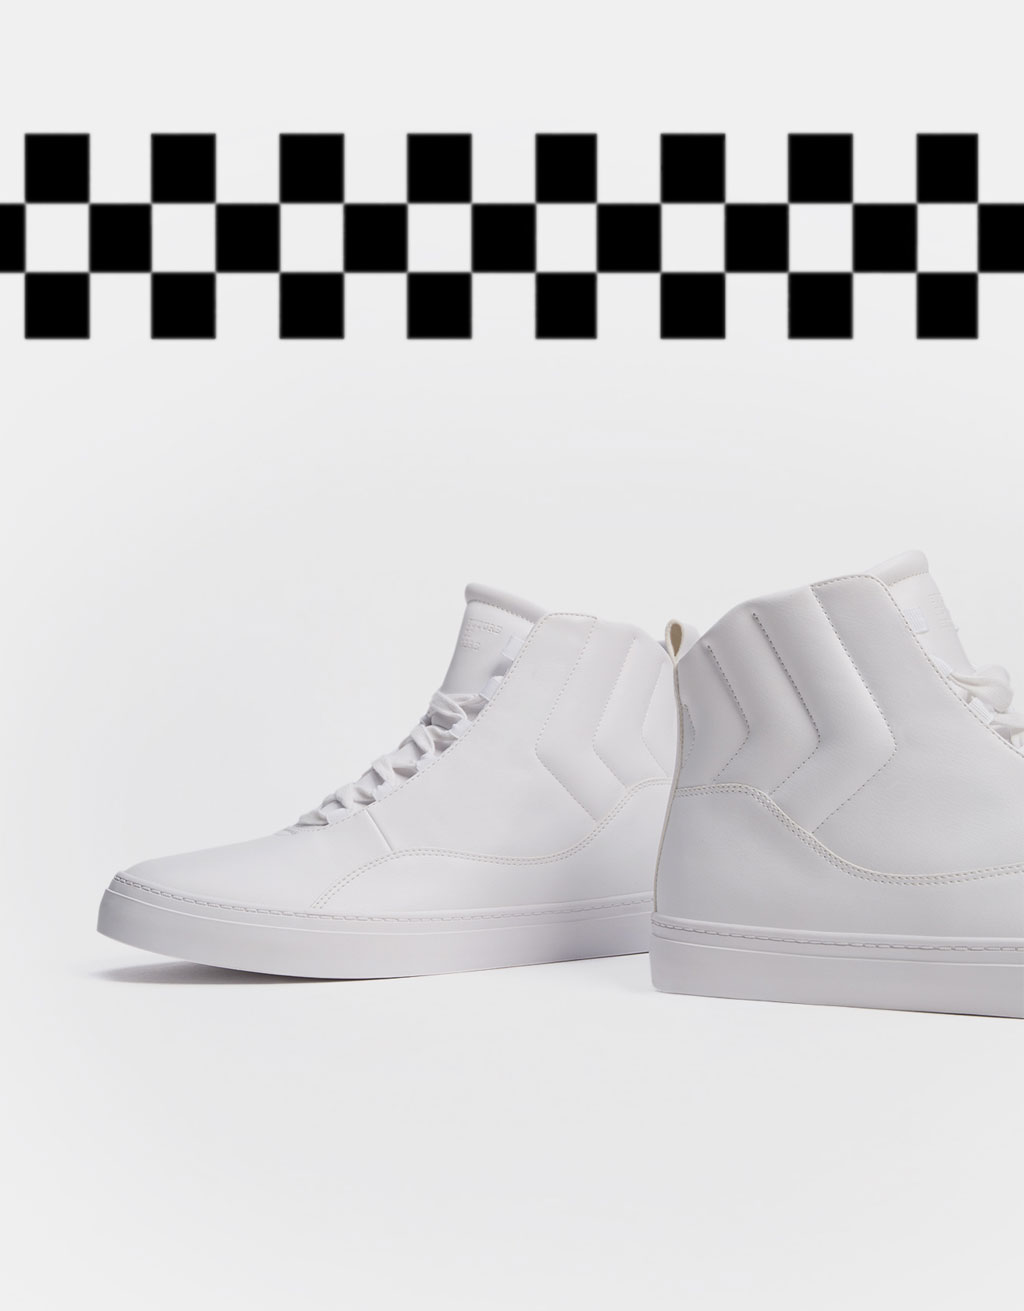 Men's quilted monochrome high top sneakers